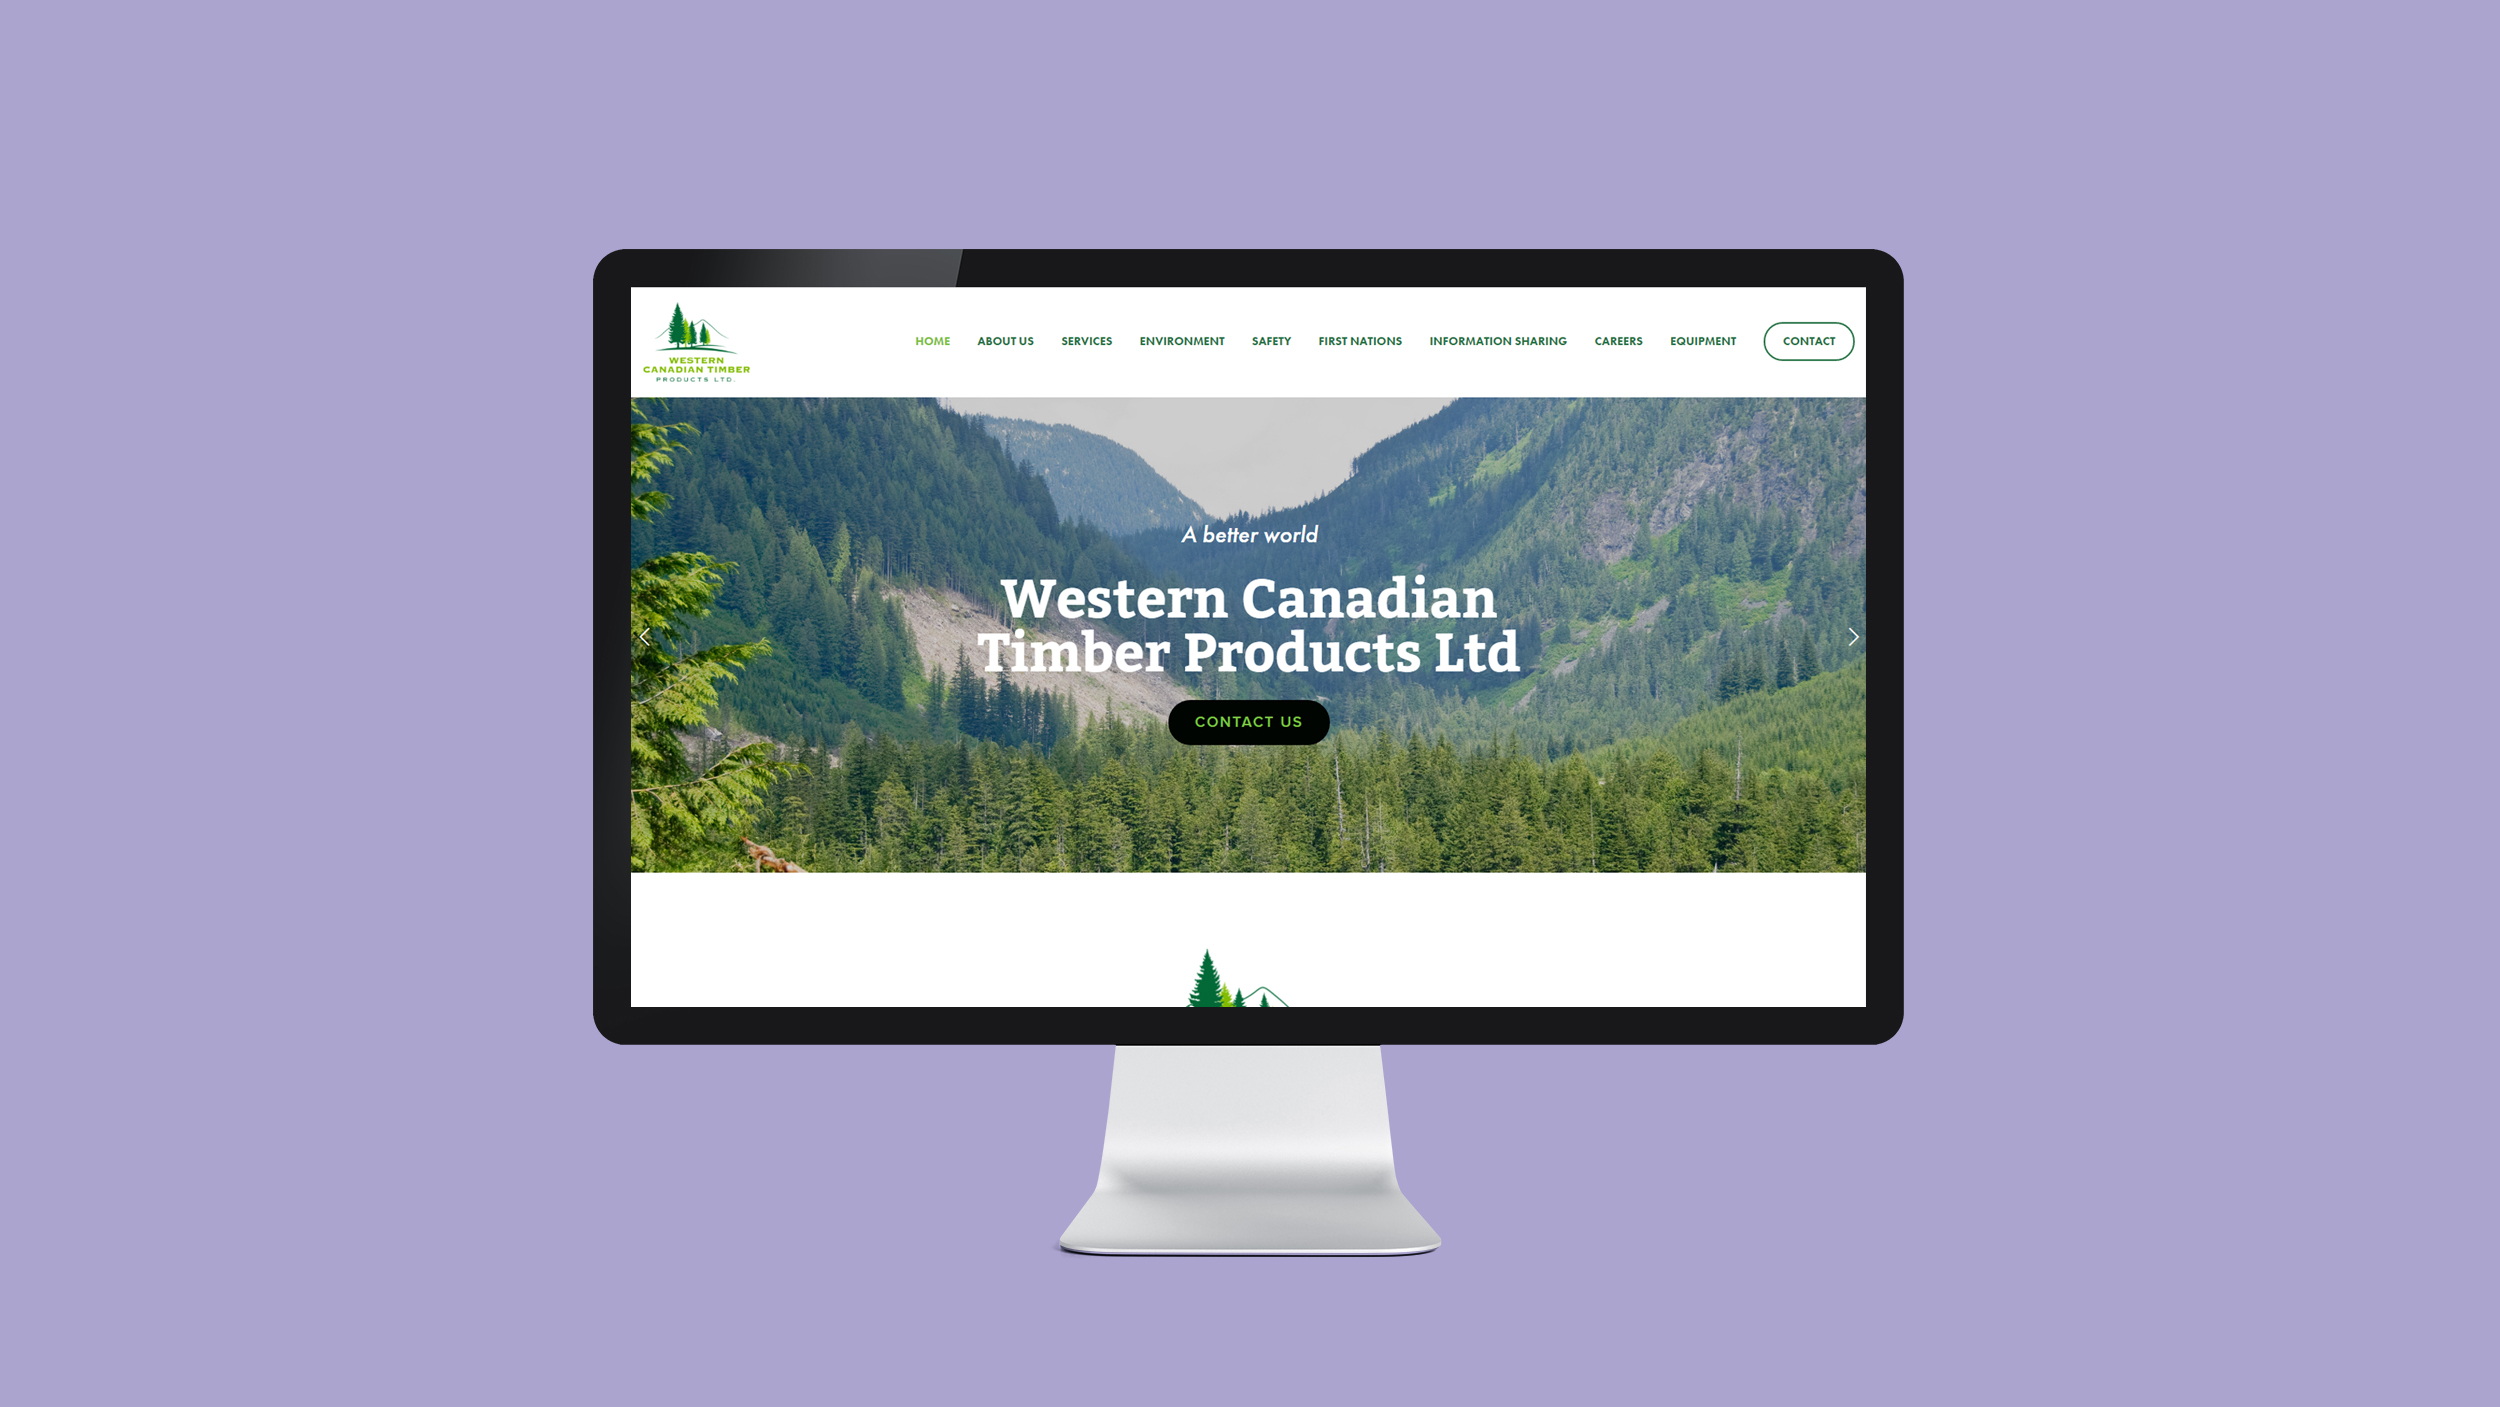 Western Canadian Timber Products Ltd.   wctp.ca  - Copyright © 2012-2017 460 Communications Inc. All rights reserved.  This design is intended strictly for portfolio use only and cannot be reproduced in any way with out written consent from 460 Communications Inc.